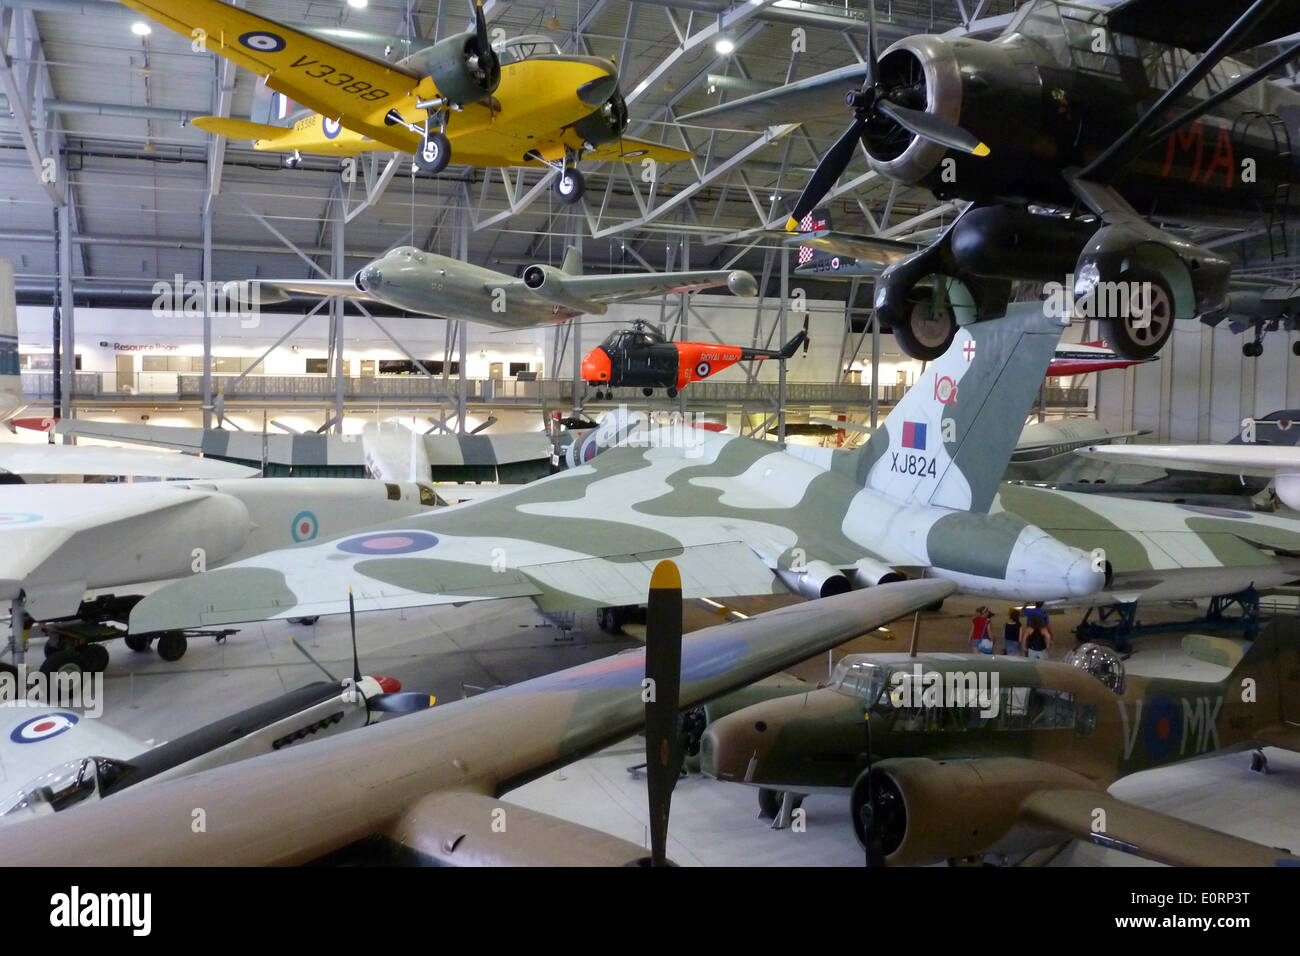 Aircraft on display at Duxford Imperial War Museum in Cambridgeshire, UK - Stock Image